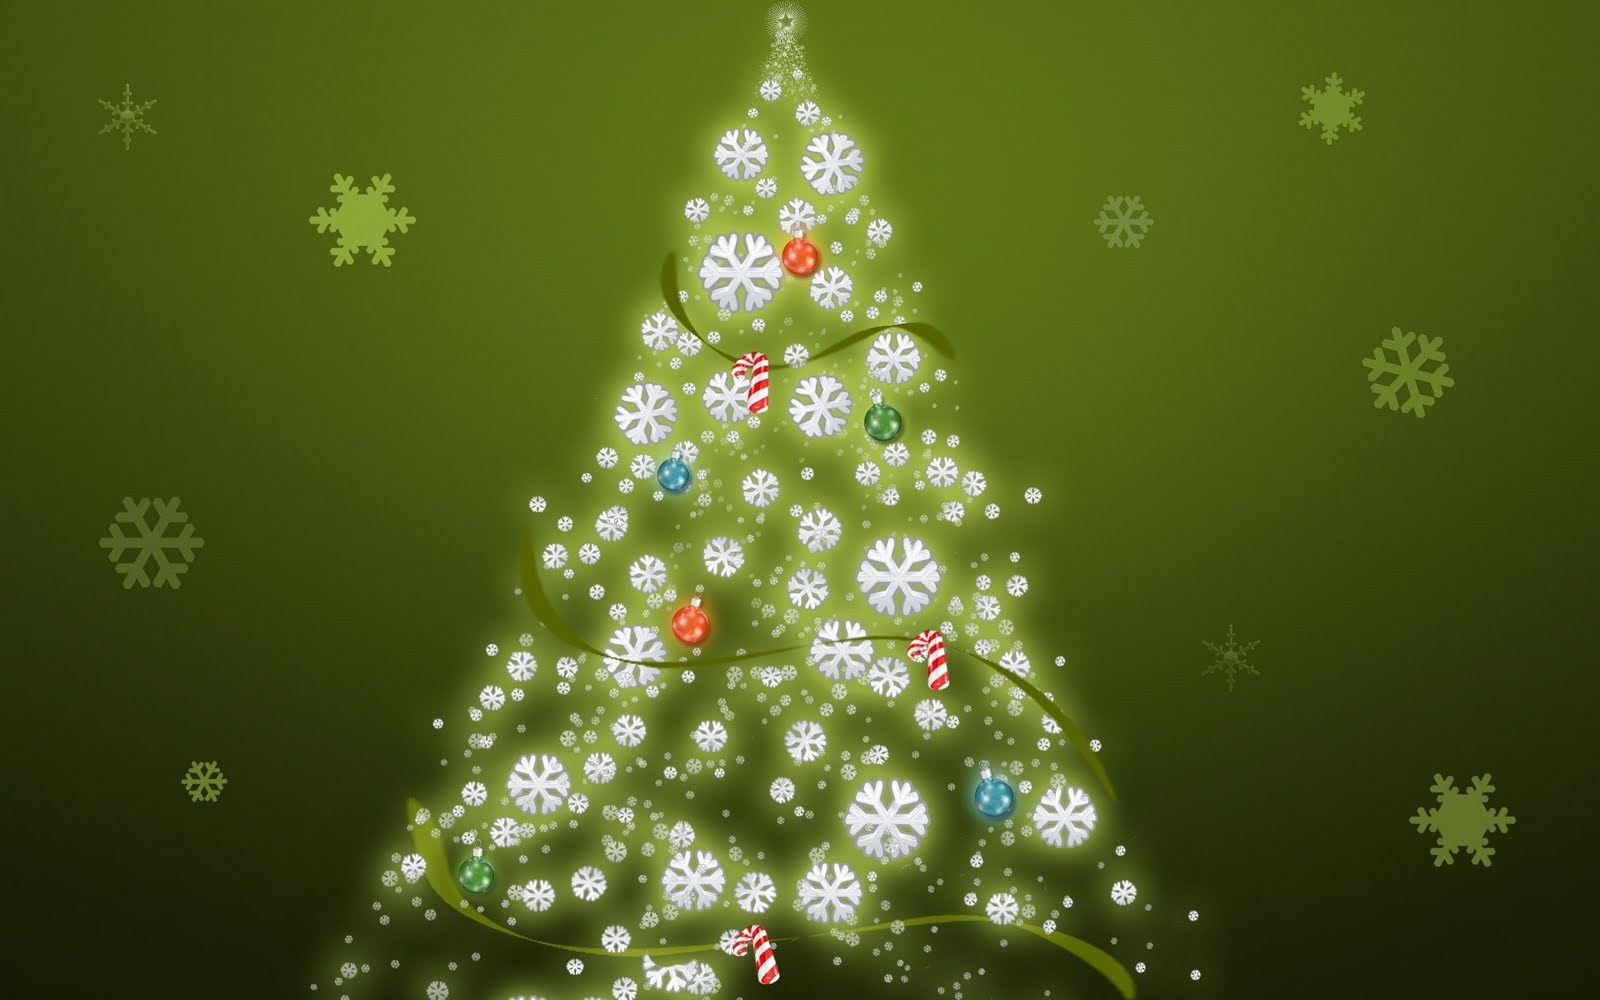 Arbol de navidad y copos de nieve christmas tree for Wallpaper interactivo